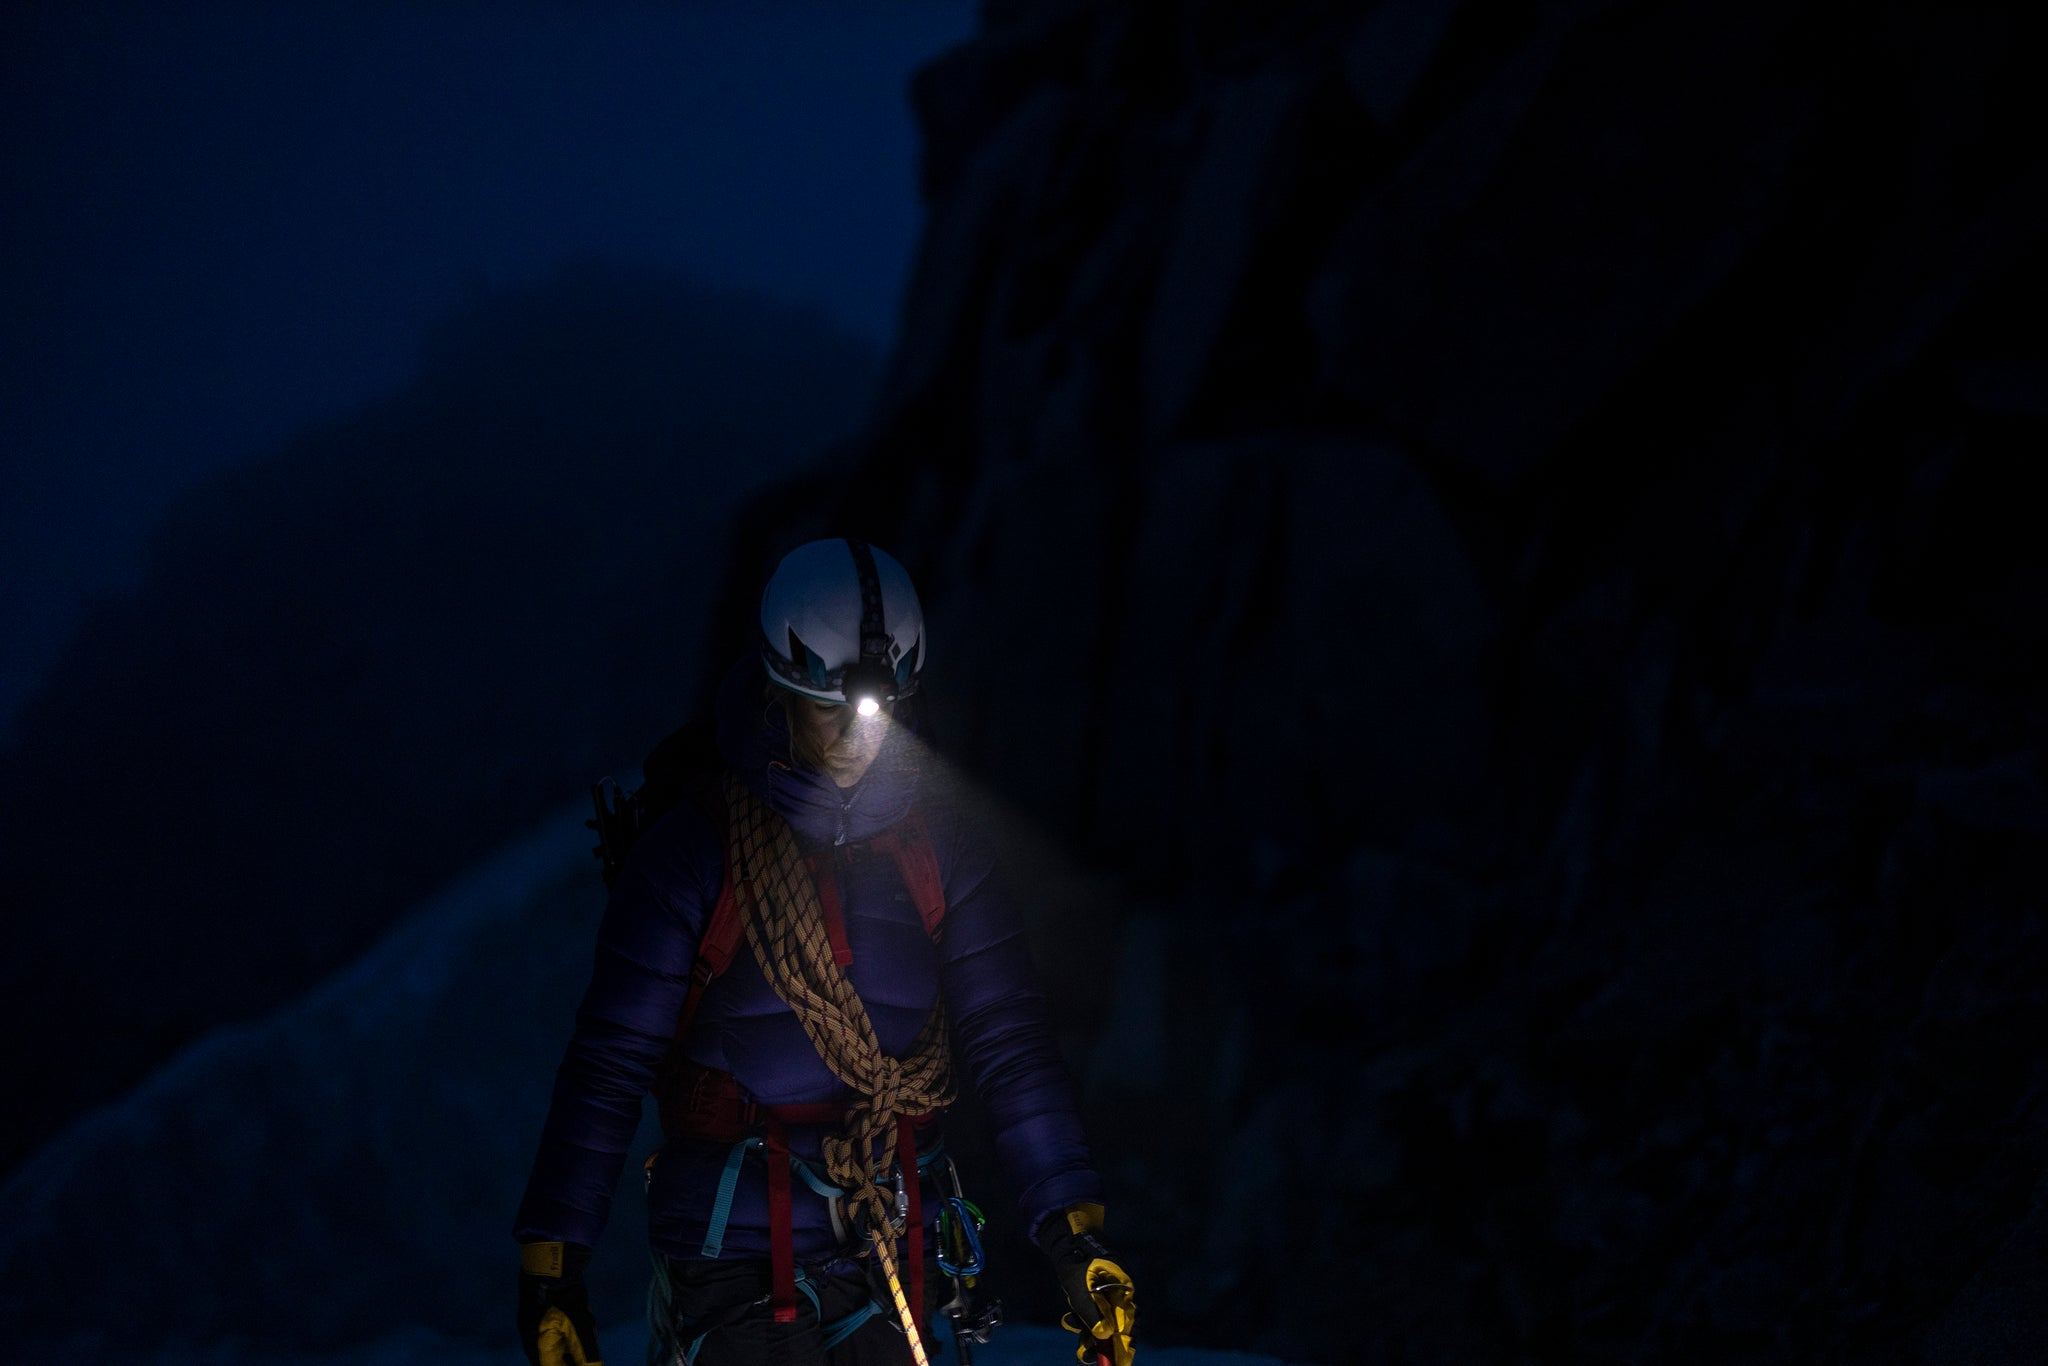 Mountaineering at night in the French Alps with the Qark rechargeable head torch on